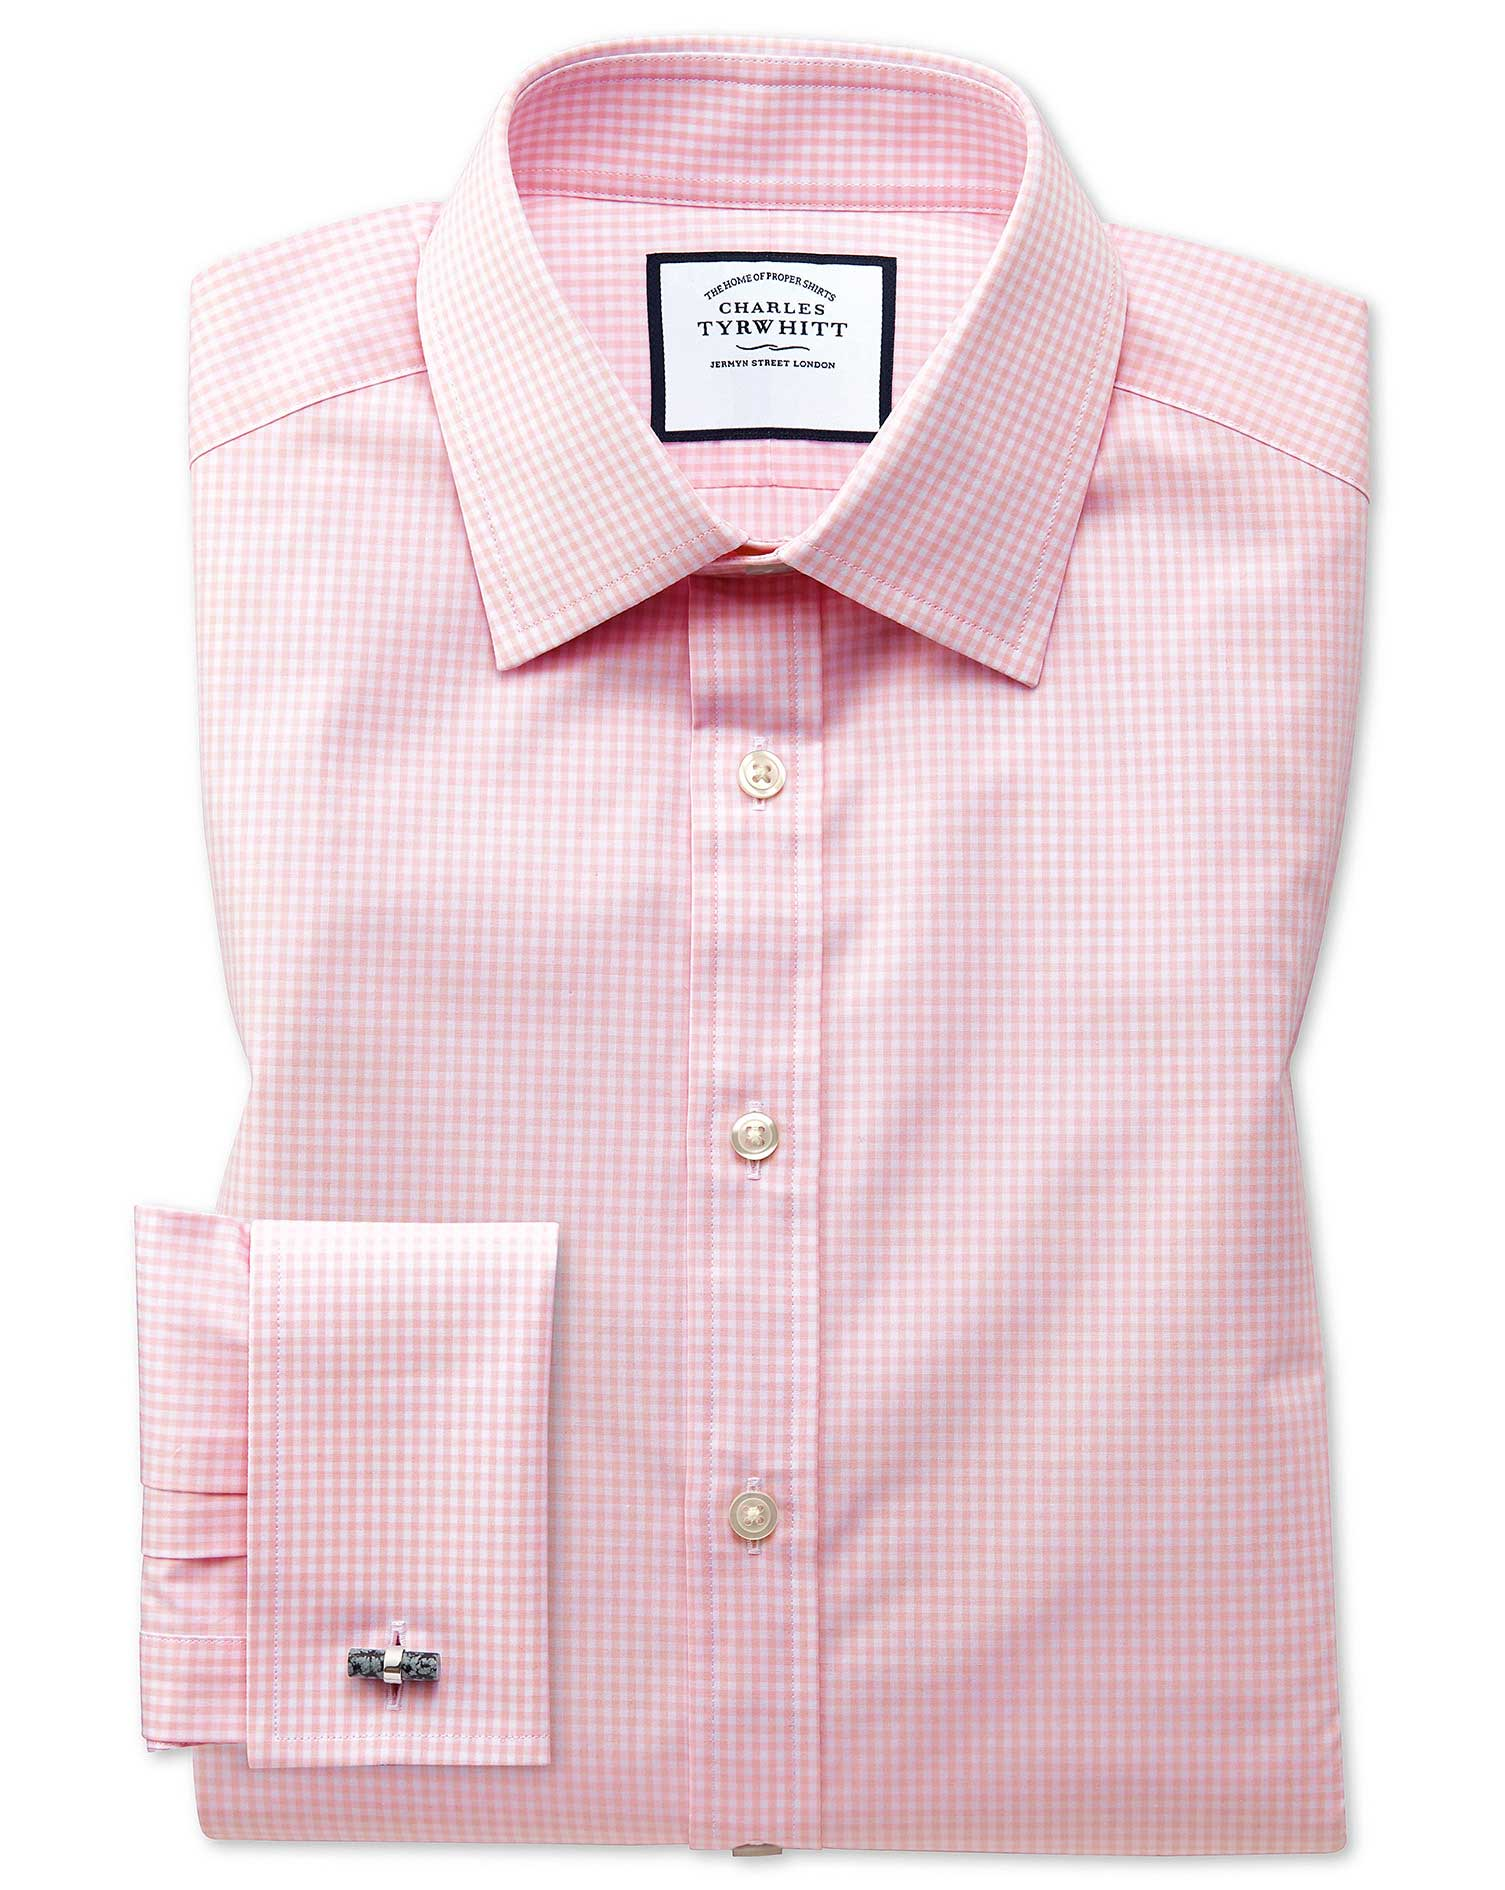 Classic Fit Small Gingham Light Pink Cotton Formal Shirt by Charles Tyrwhitt